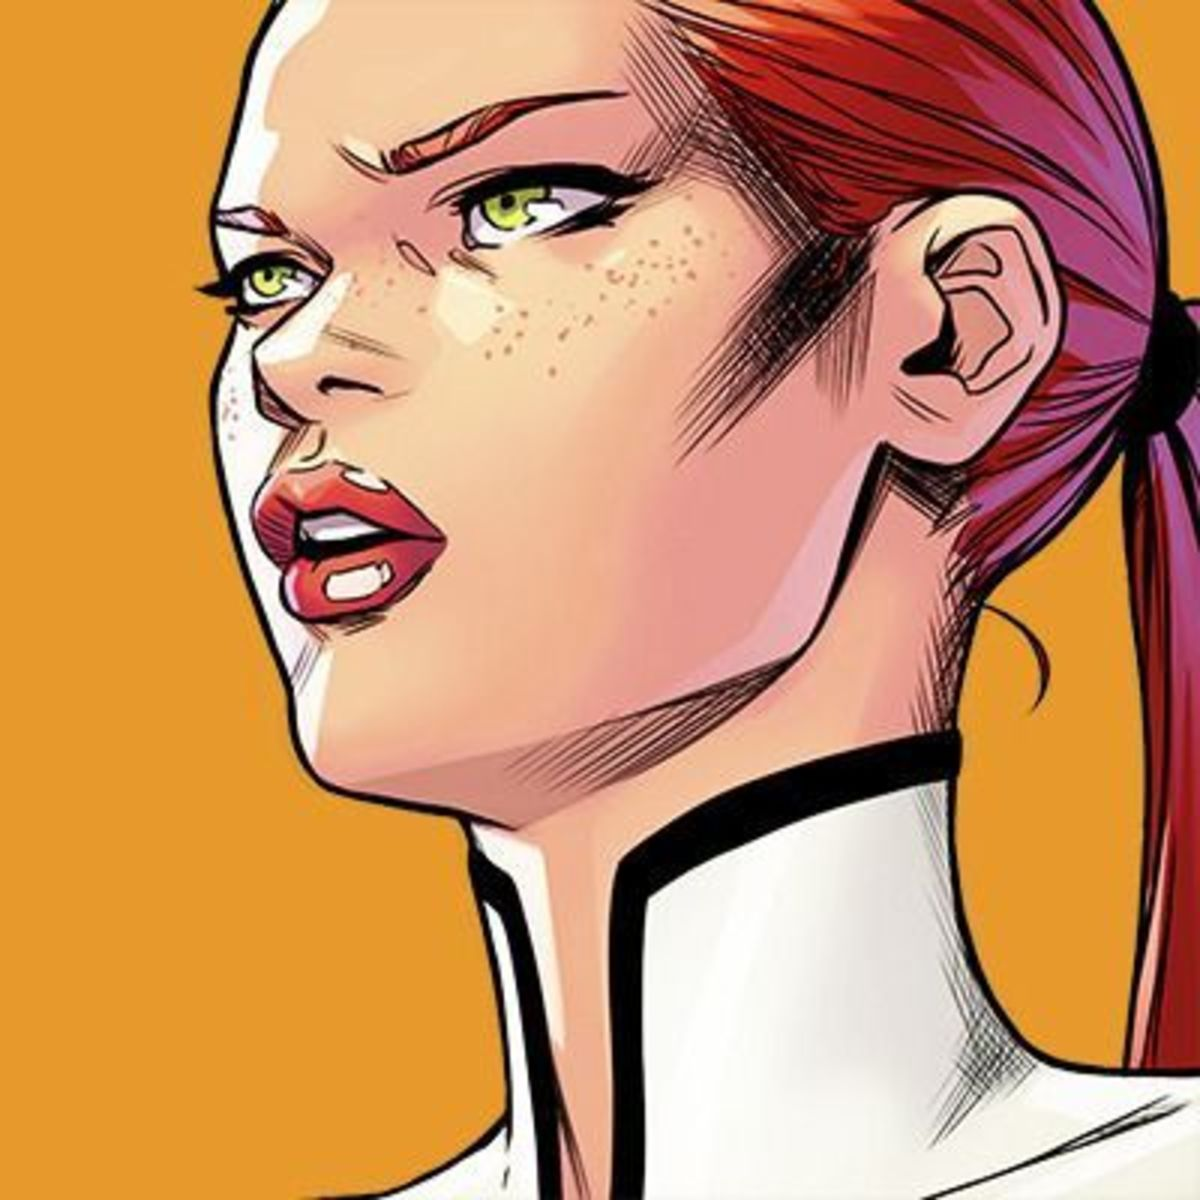 Lana as she appeared in the comics.